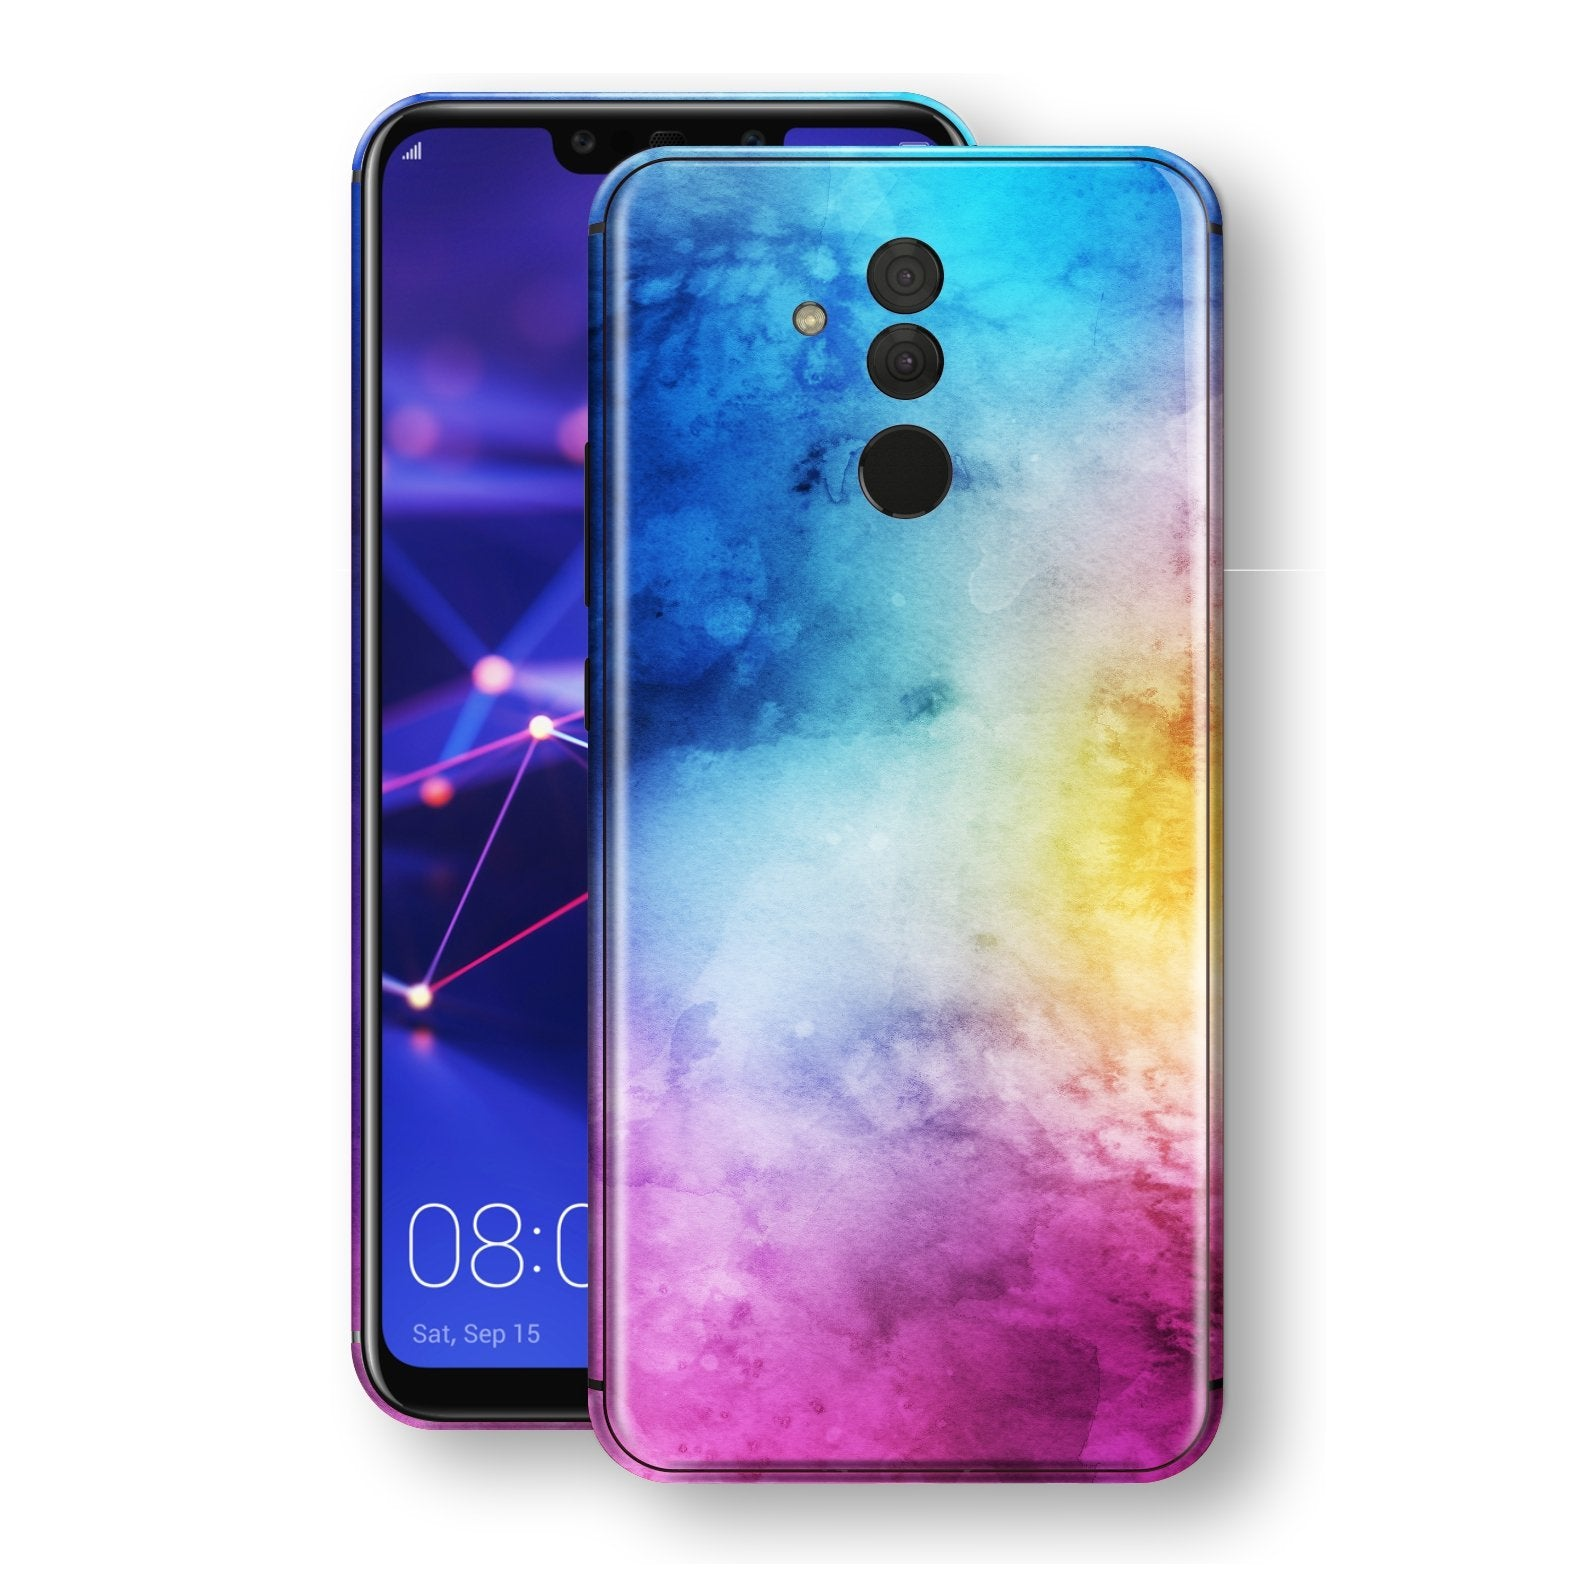 Huawei MATE 20 LITE Signature Abstract Watercolour Purple Blue Skin Wrap Decal Protector | EasySkinz